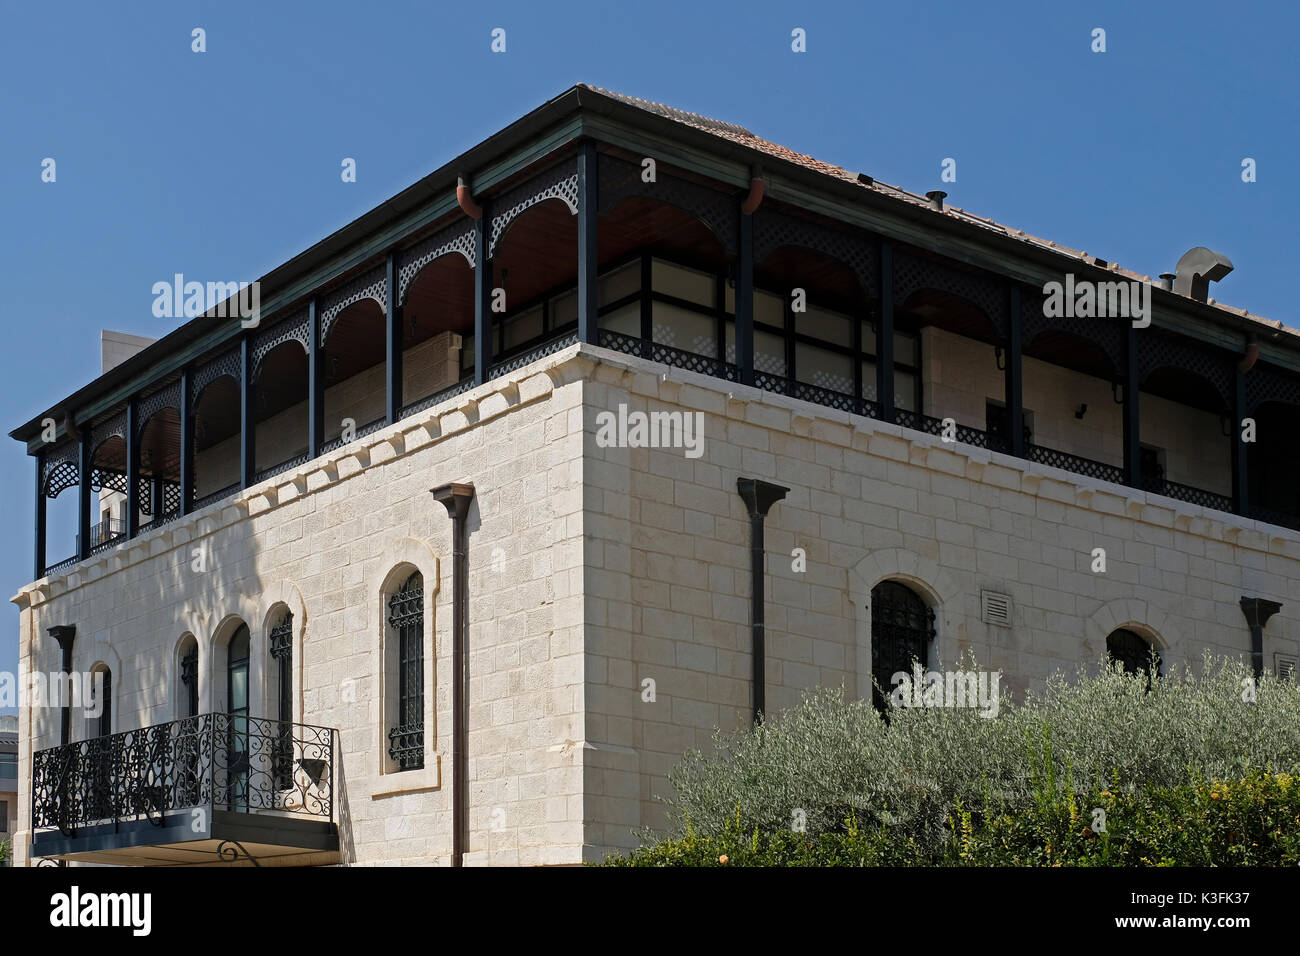 A renovated late-19th century house now owned by Jewish American billionaire Joseph Mordechai Tabak, who serves as the CEO of Princeton Holdings a New York City based real estate investment firm located on Ethiopia street in West Jerusalem Israel - Stock Image